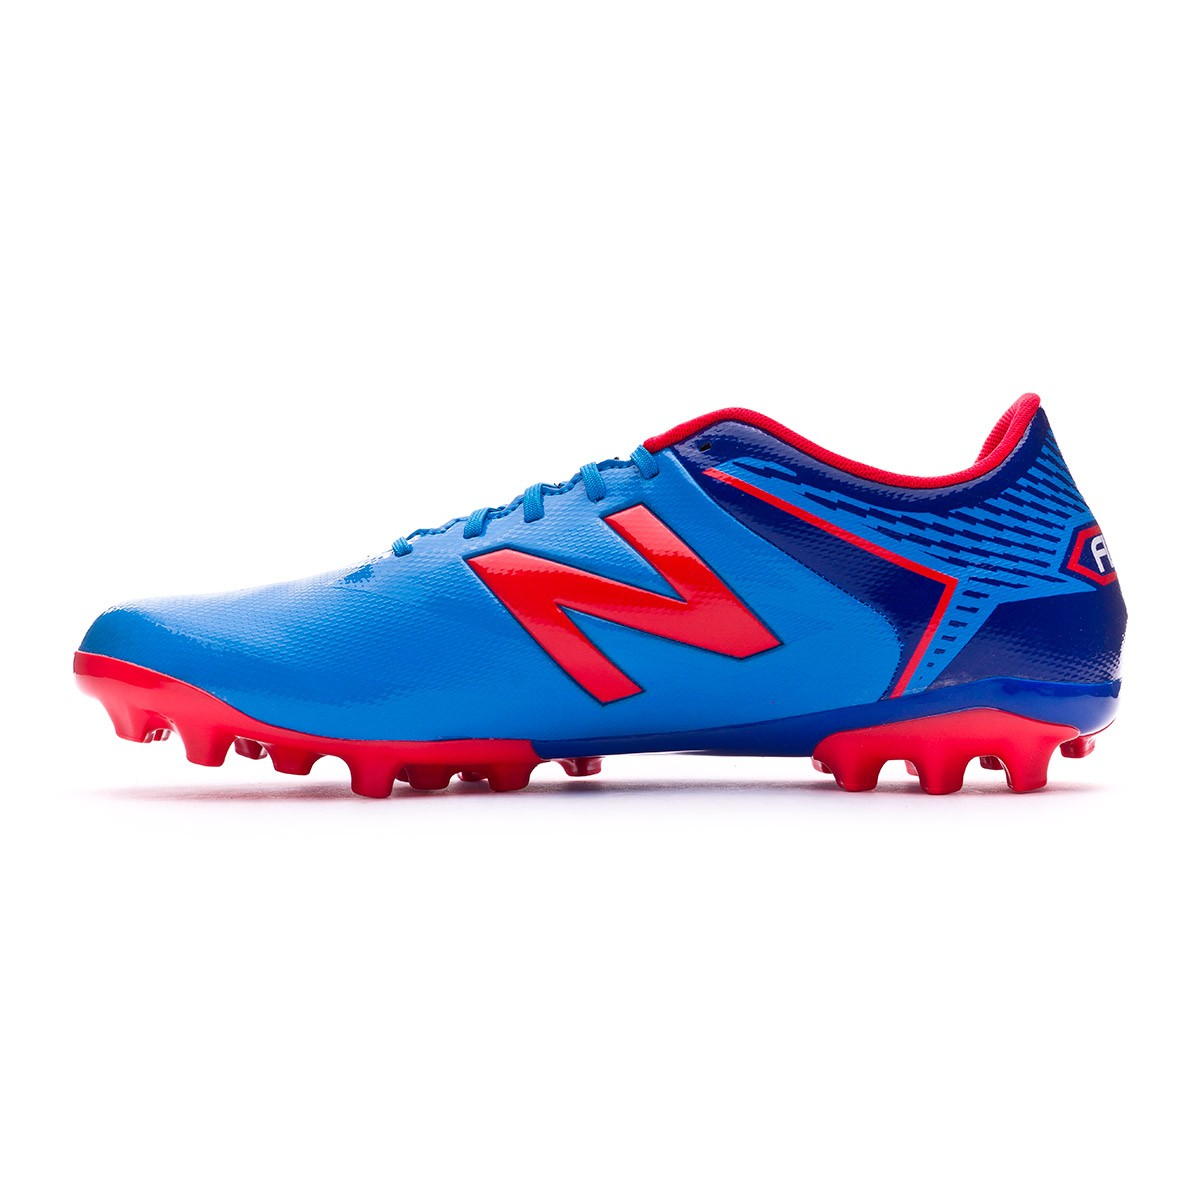 Boot New Balance Furon 3.0 Dispatch AG Bolt-Team royal - Soloporteros es  ahora Fútbol Emotion 2c5ef7014bccd